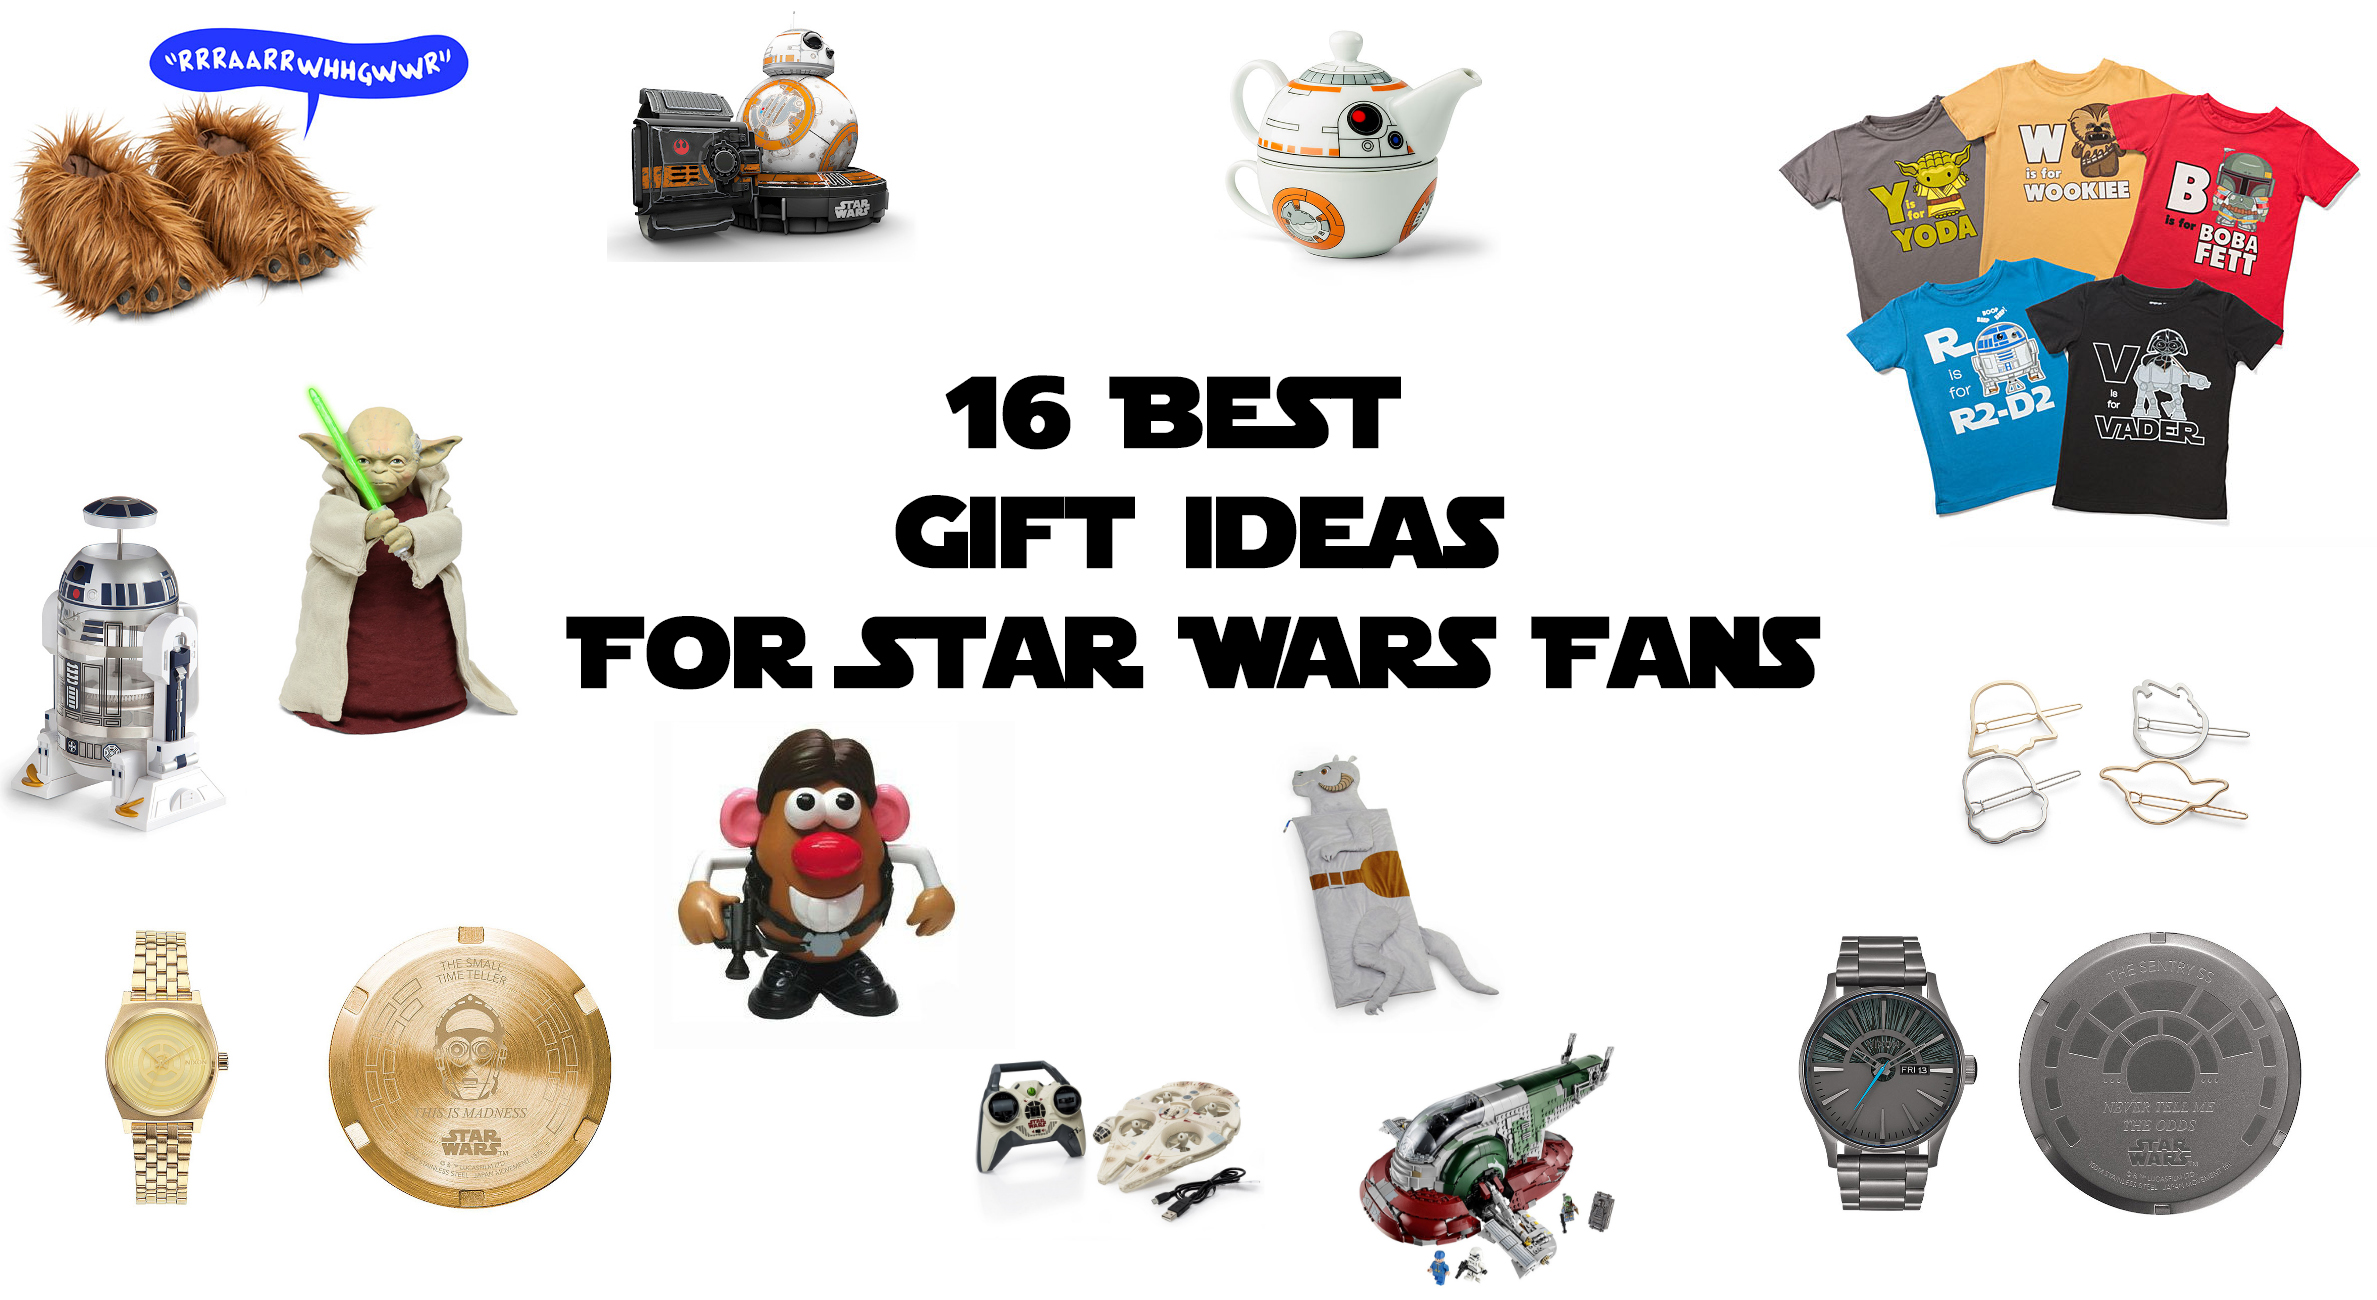 16 Best Gift Ideas For Star Wars Fans